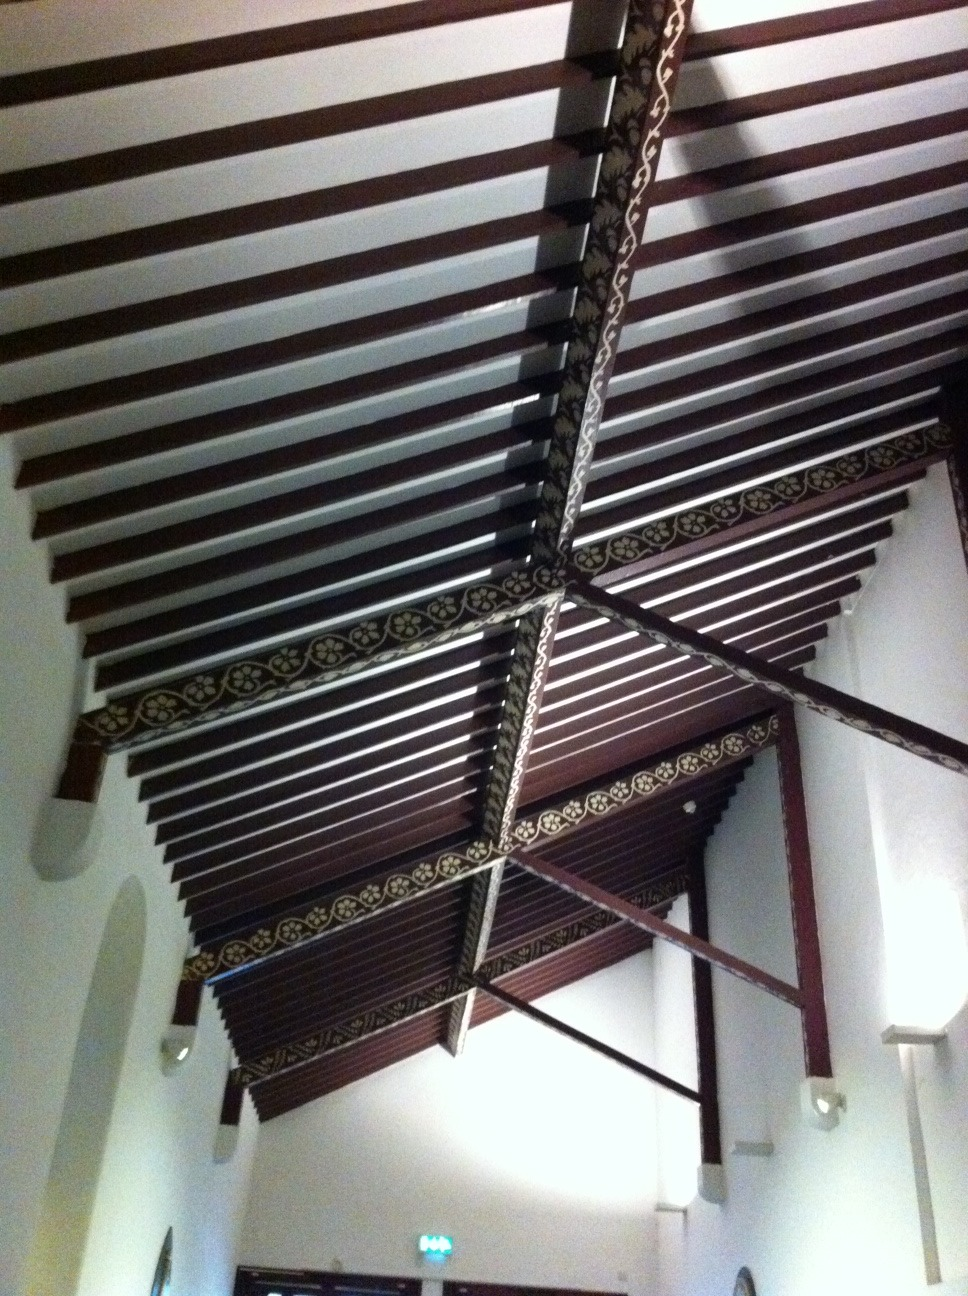 Ceiling of hallway entrance to the church